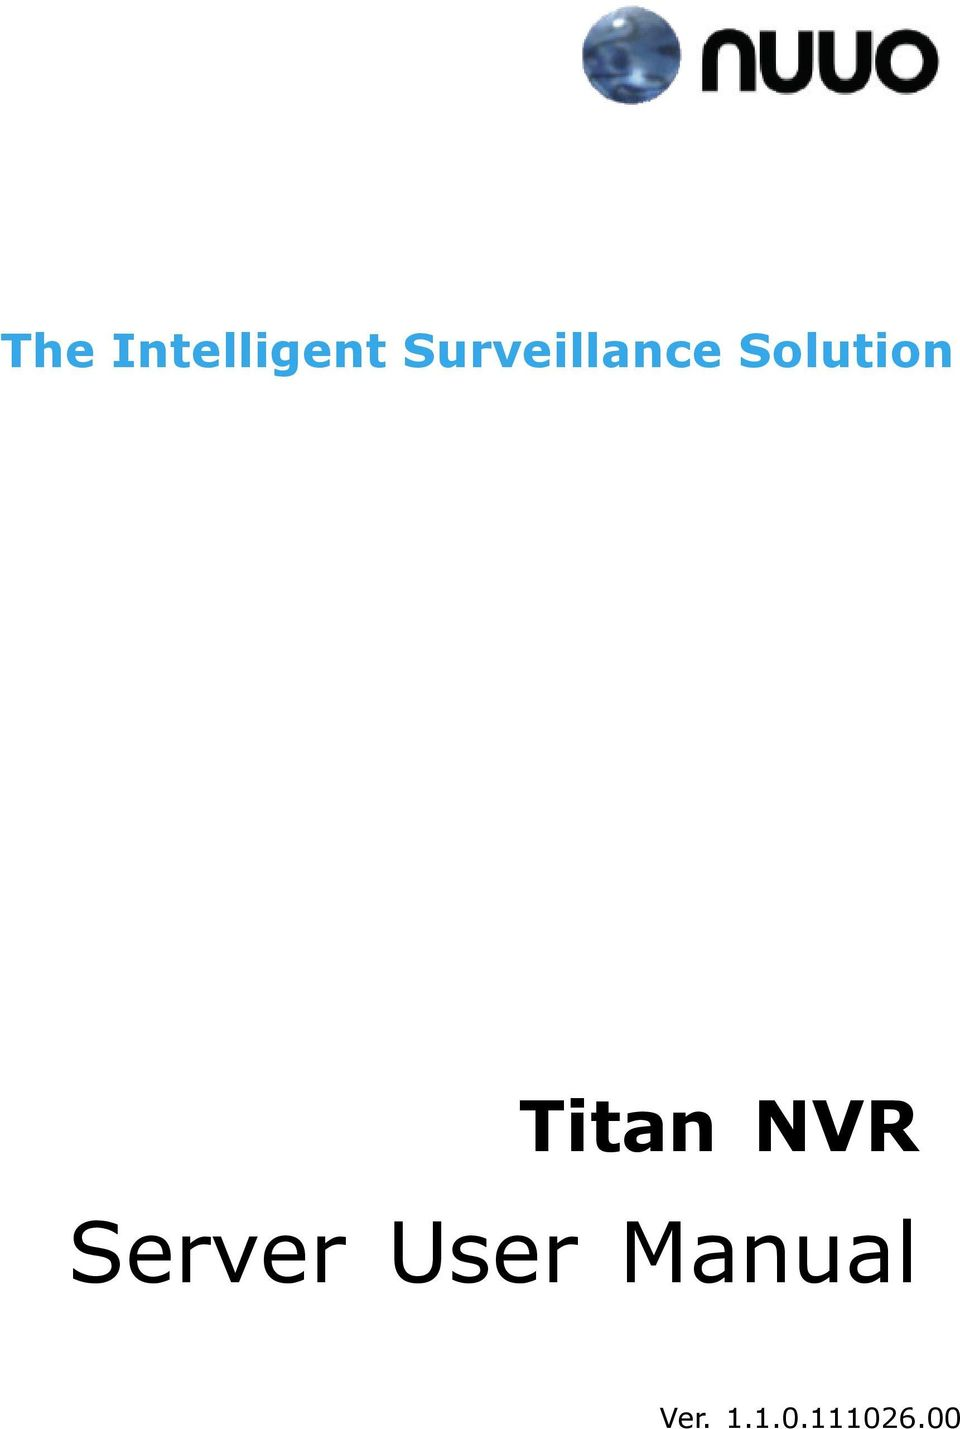 Titan NVR Server User